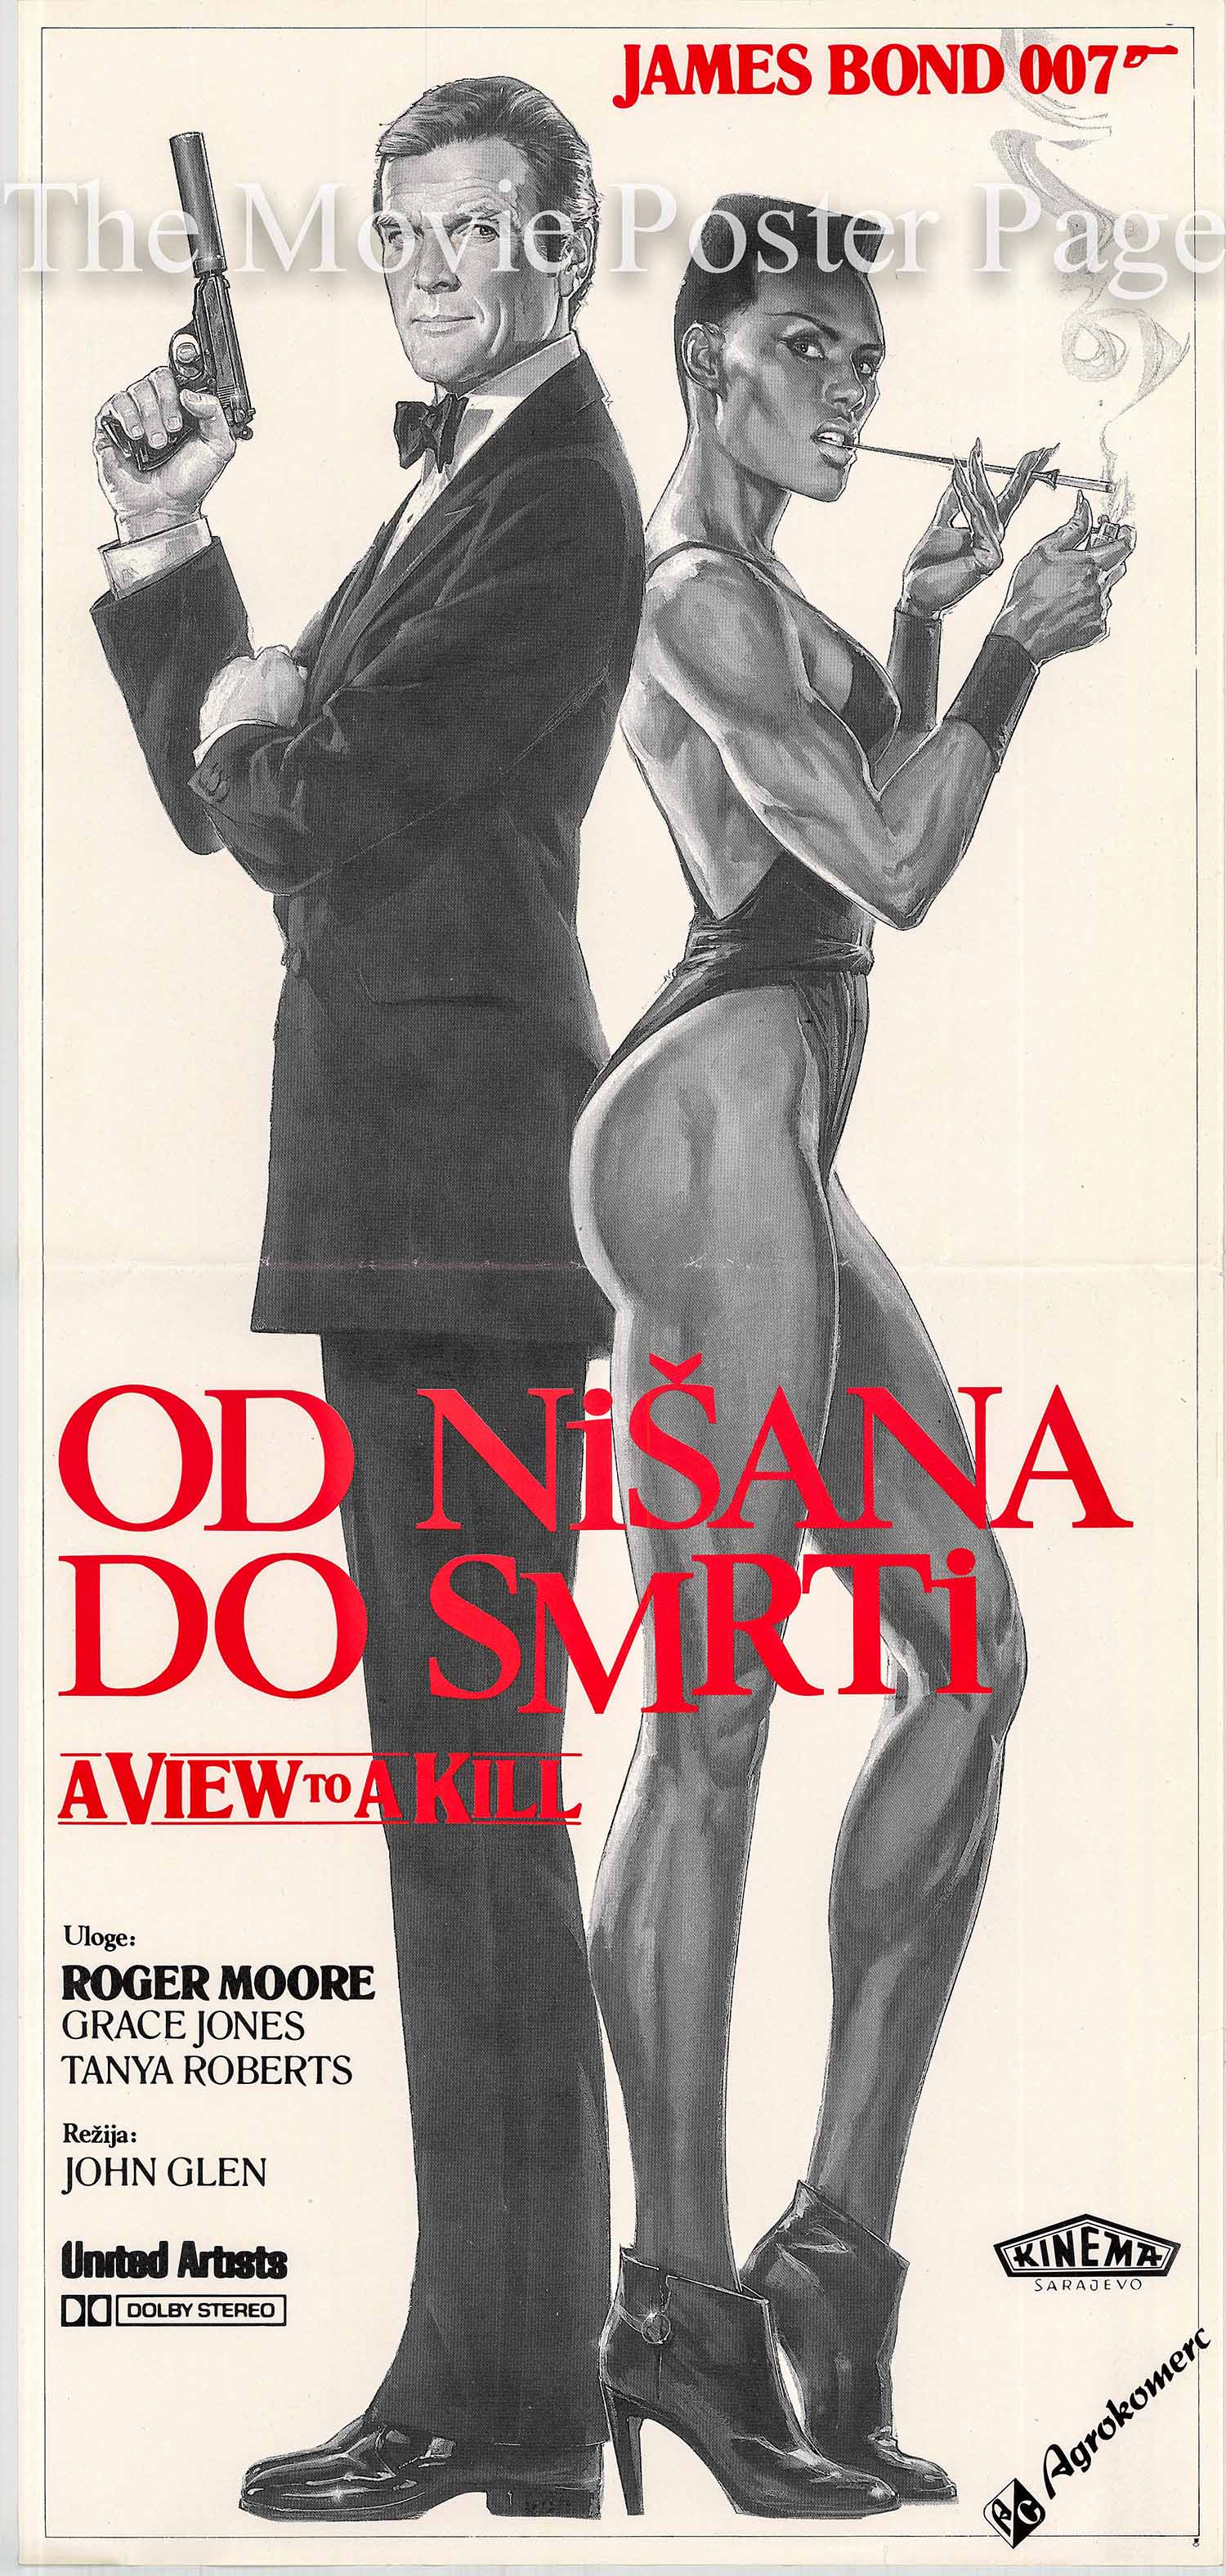 This is a Yugoslavian insert poster made to promote the 1985 John Glen film A View to a Kill starring Roger Moore as James Bond.